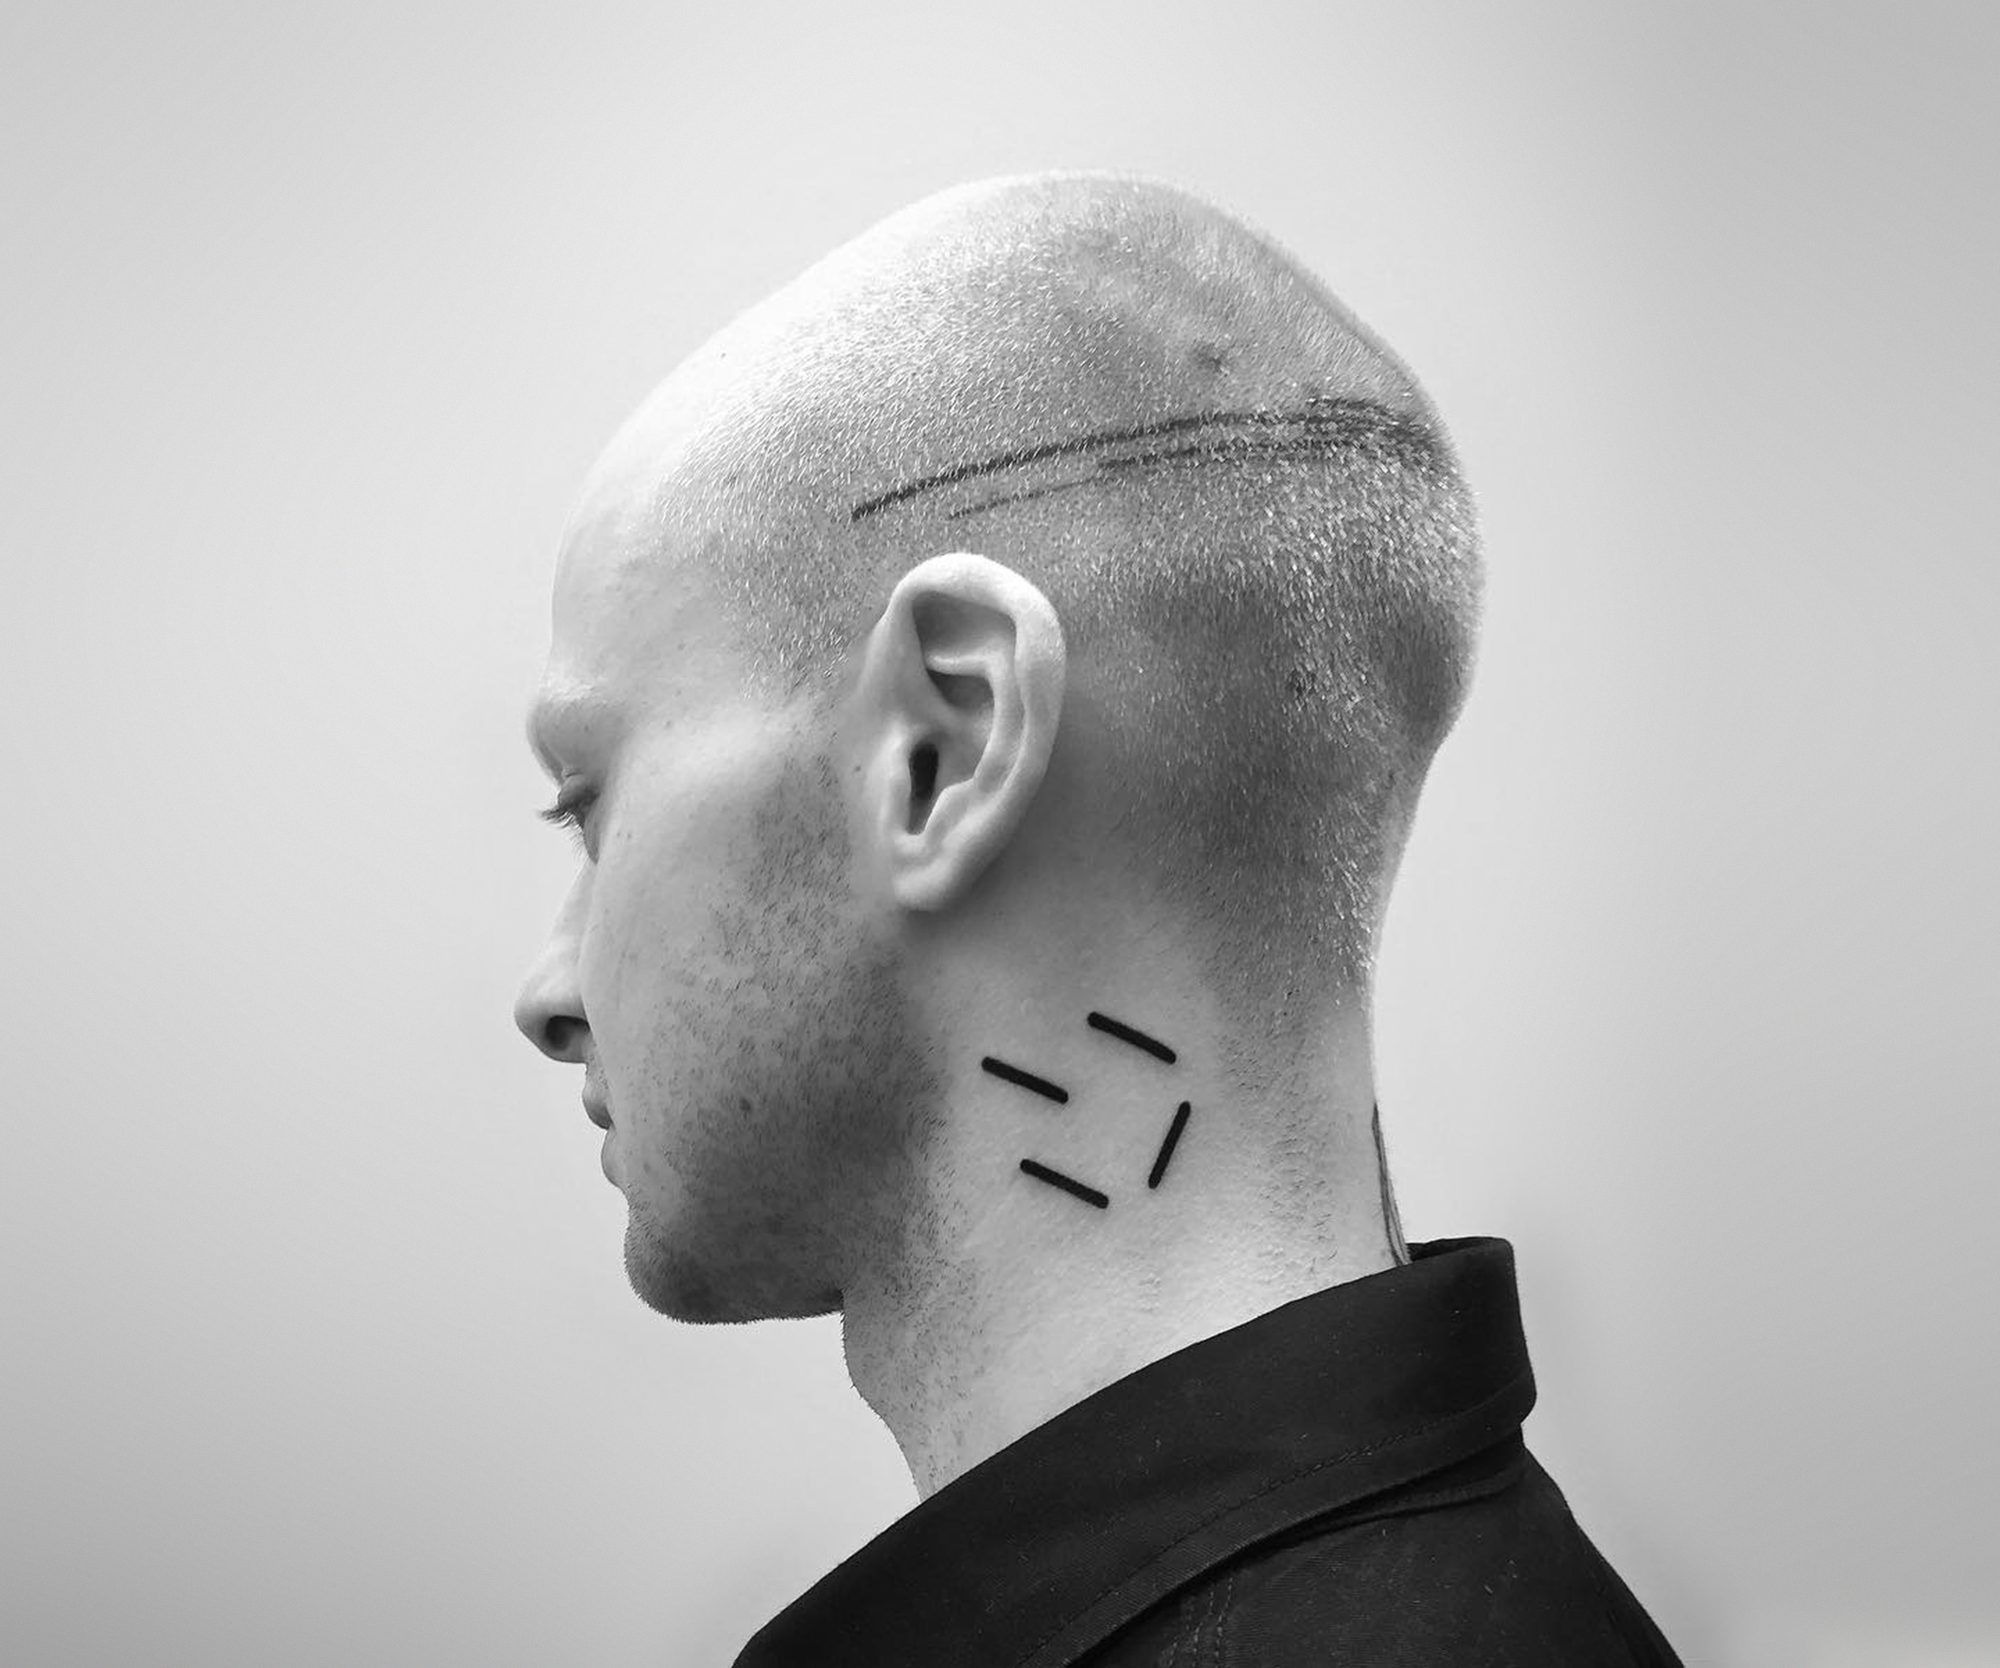 Geometric Tattoos: An Update from Stanislaw Wilczynski